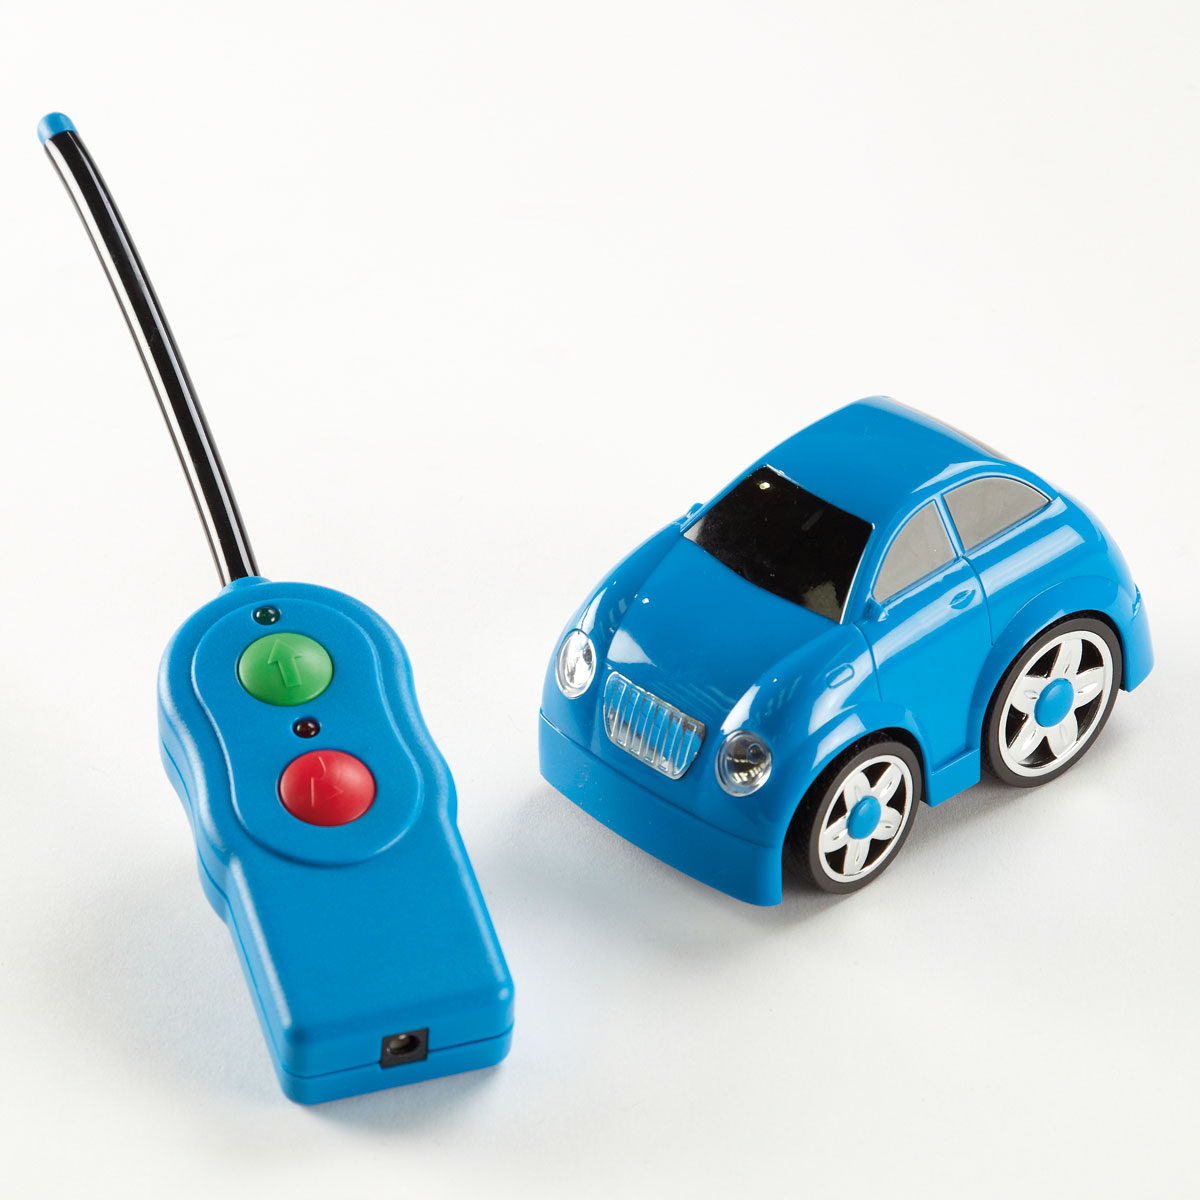 Remote control car from TTS